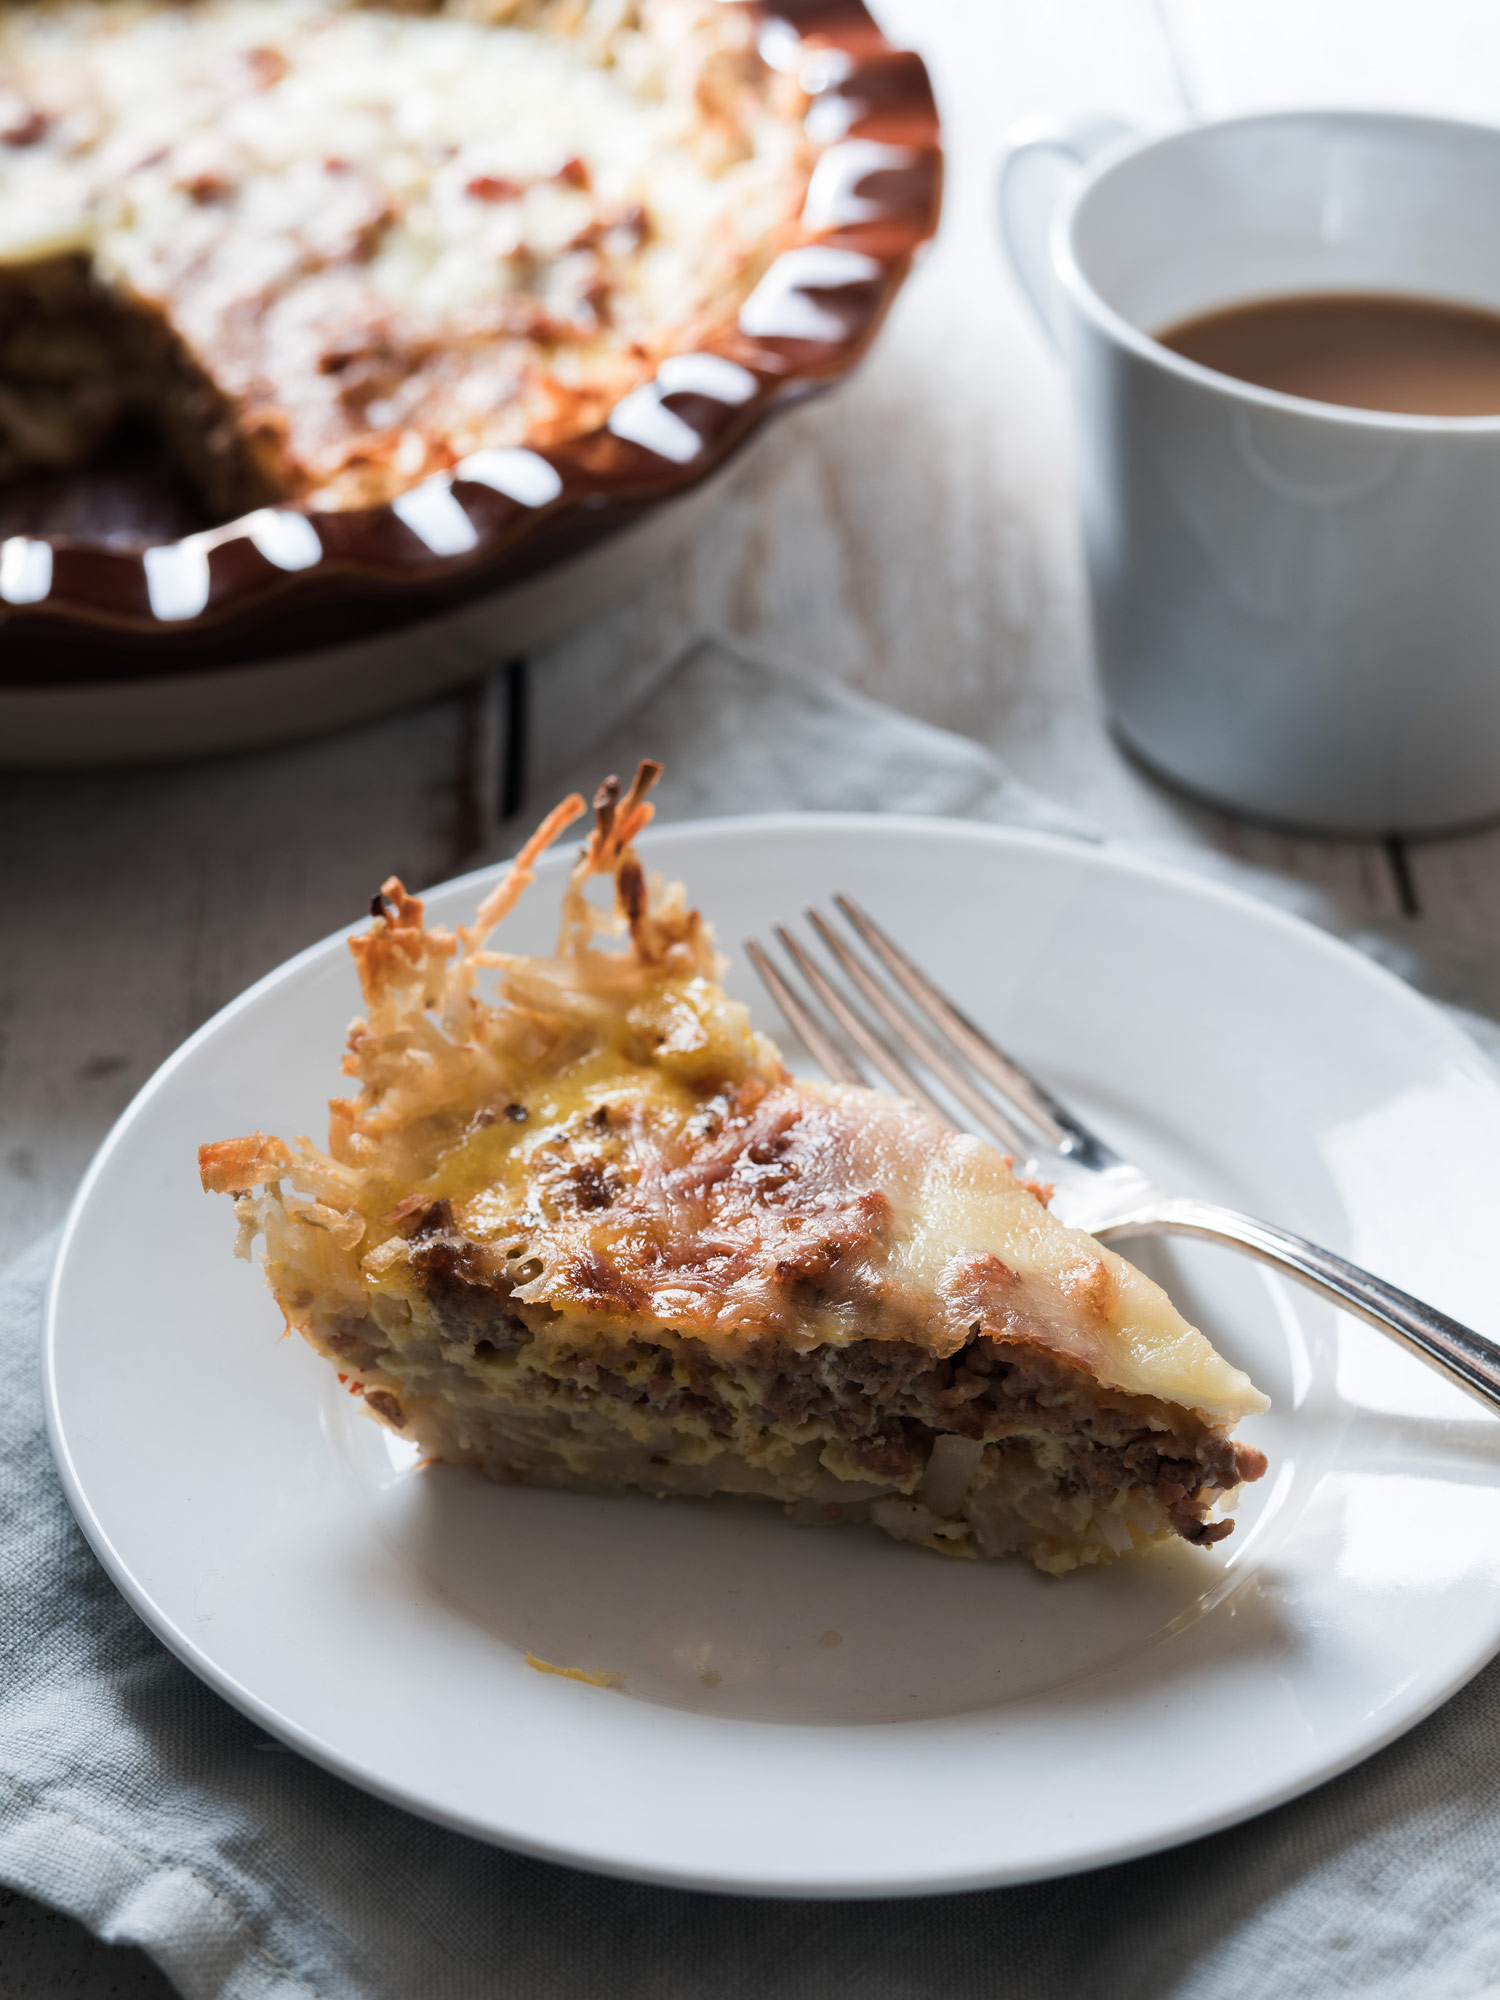 Breakfast casserole that I food and prop styled for   Simply Gluten-Free Magazine  . Photo by  Stephen DeVries .